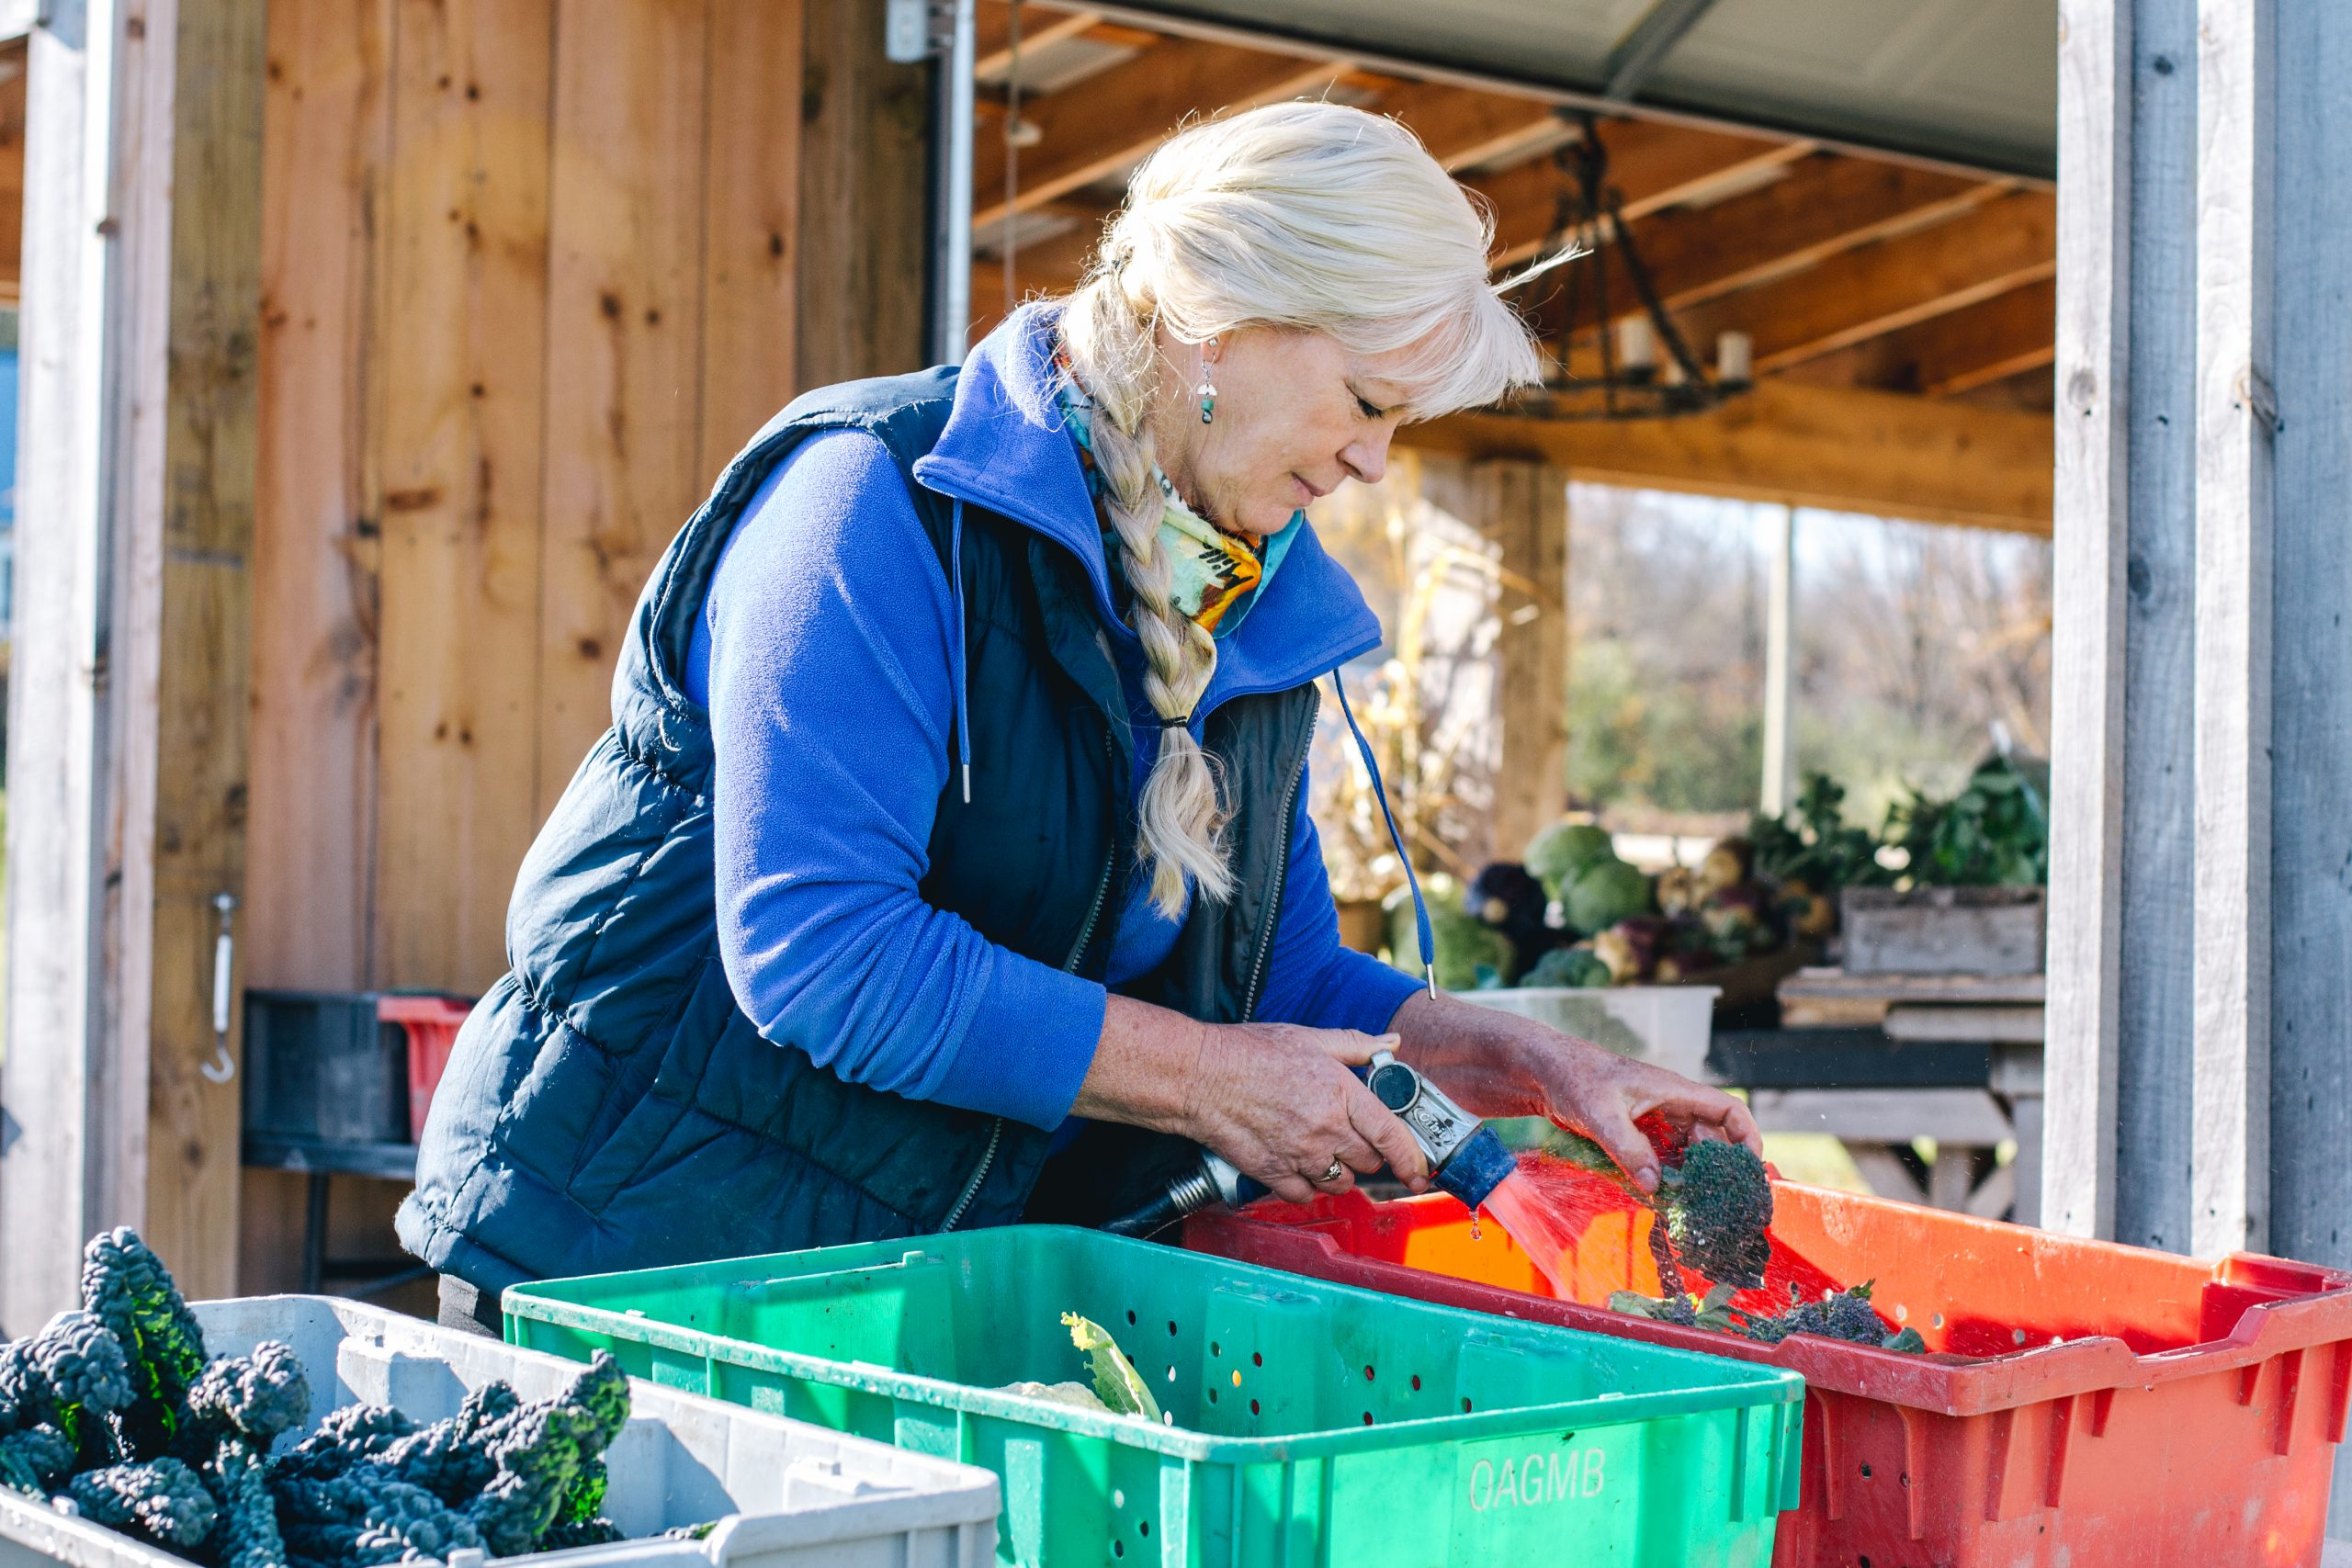 Sue Vanden Bosch of Willow Creek Farms stands at a table outside the farm stand washing produce.